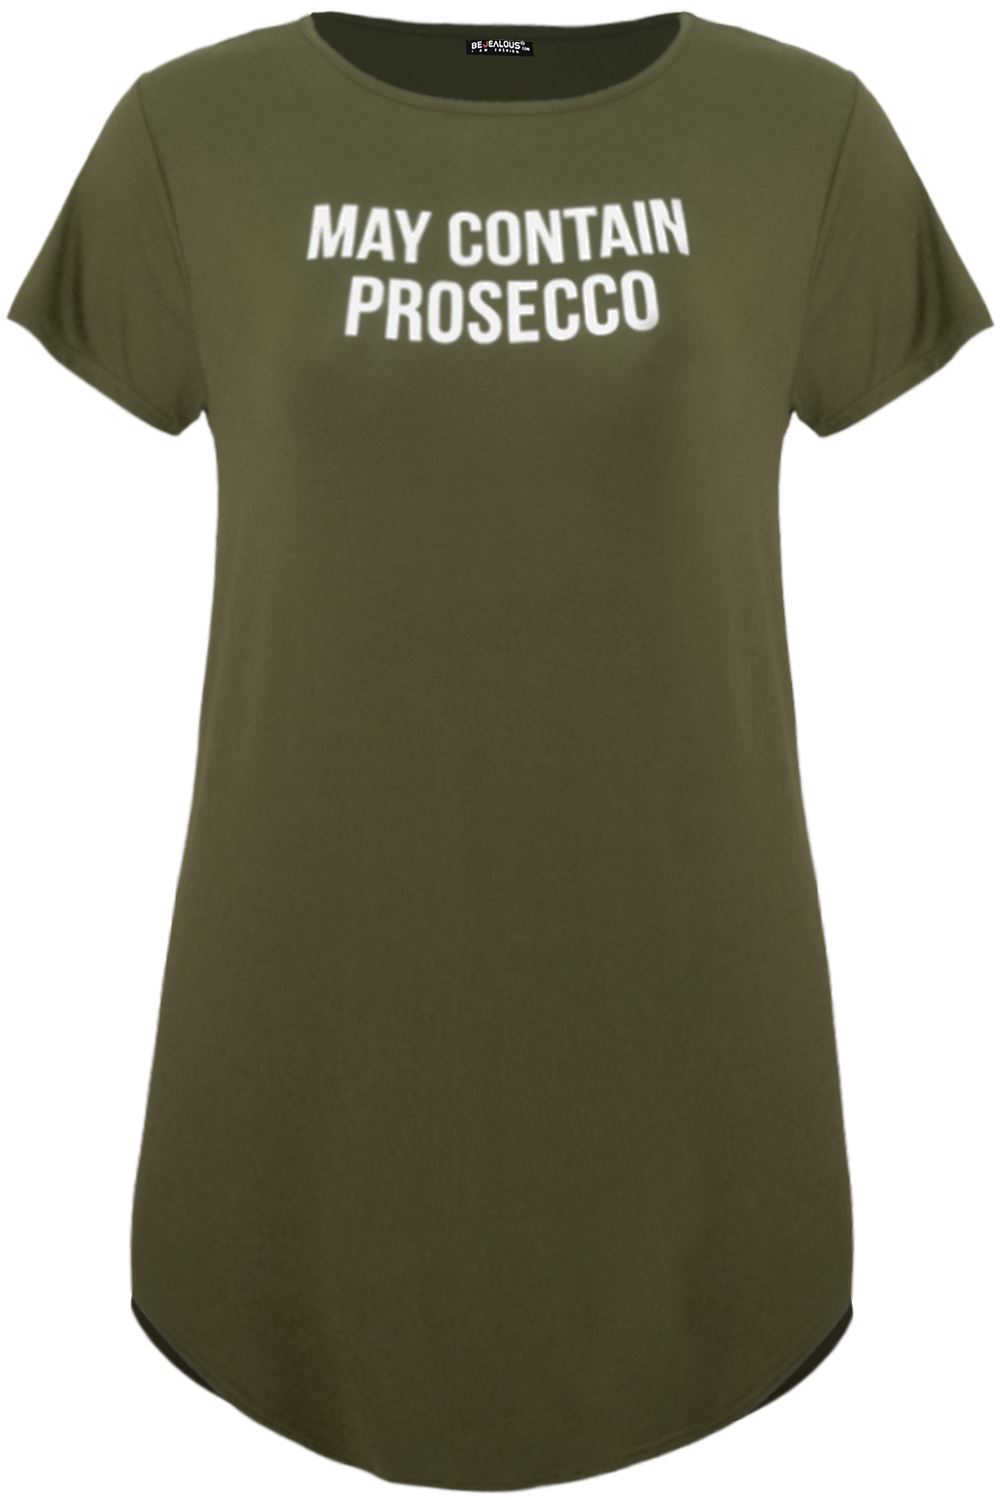 Plus Size Ladies Womens Short Sleeve CONTAINS PROSECCO Curved Hem T Shirt Dress